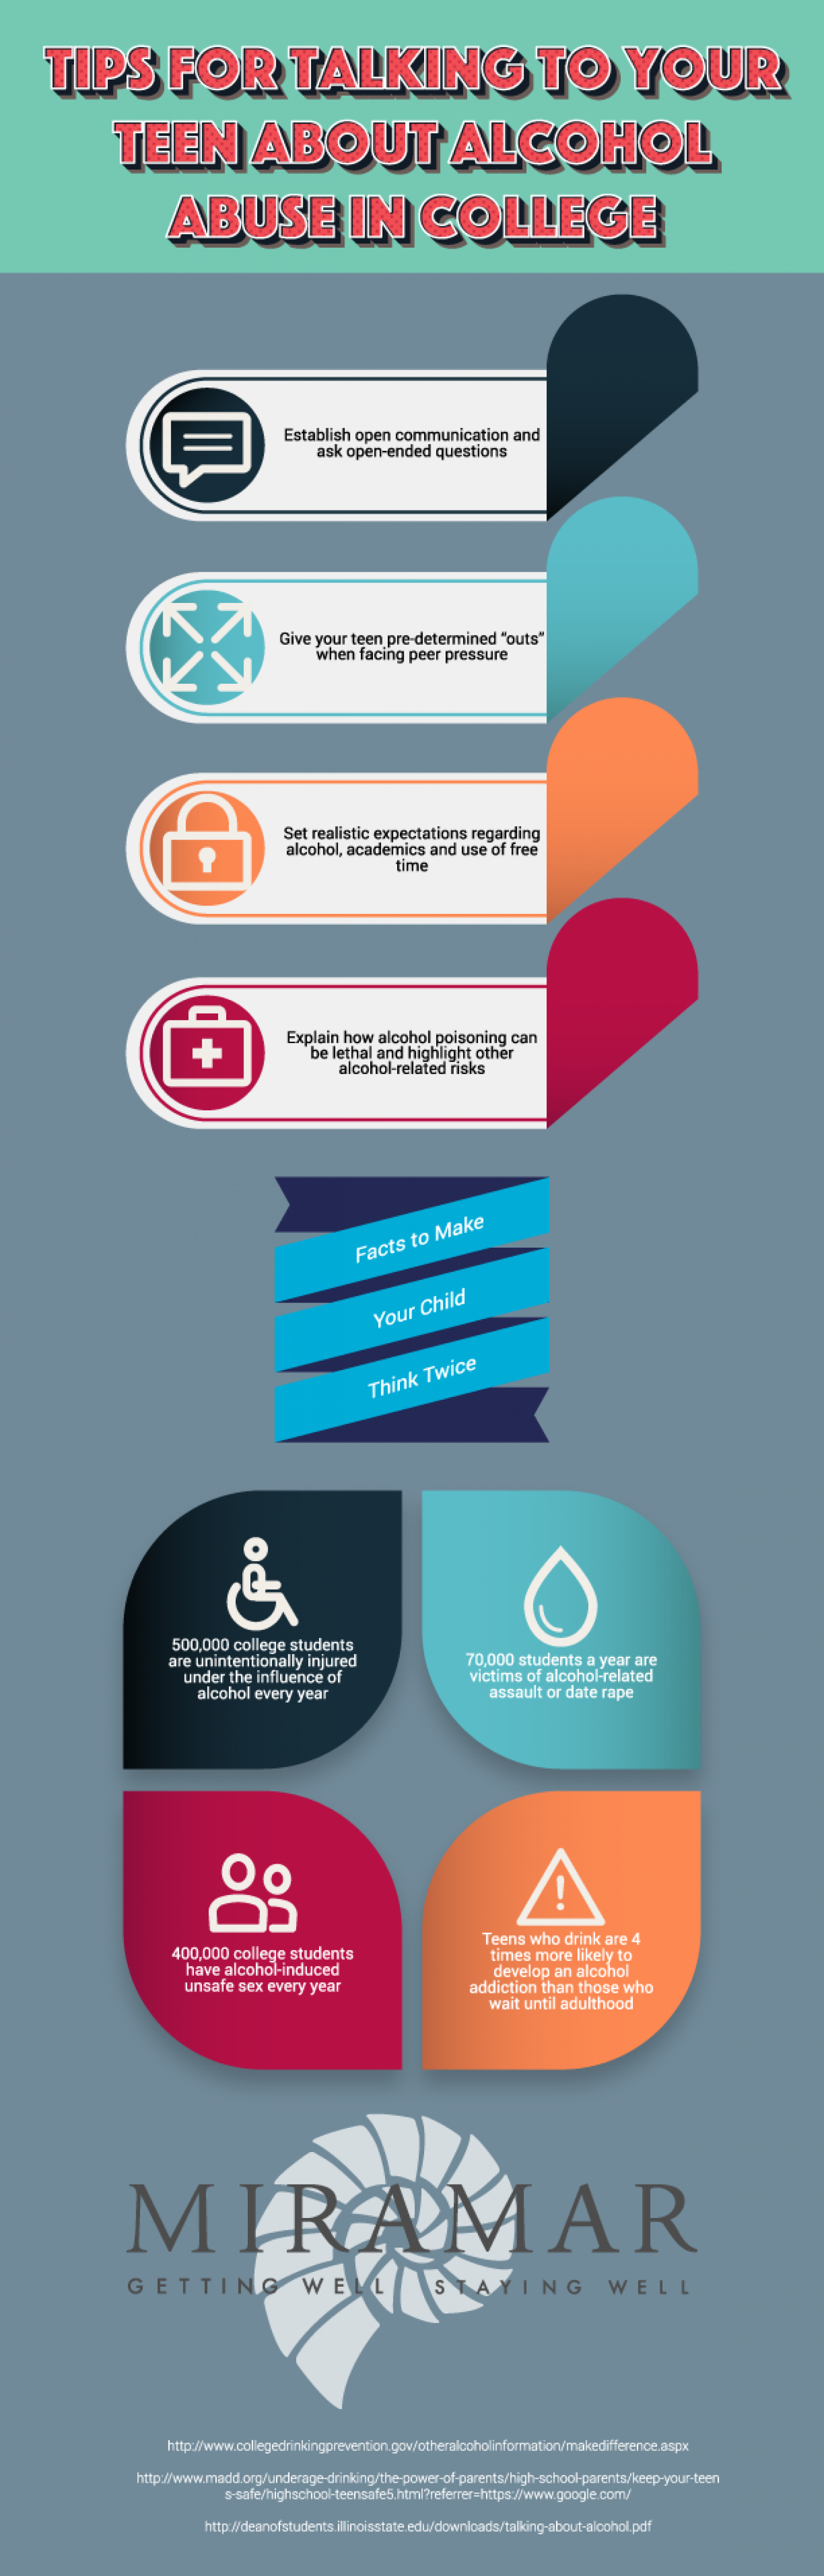 Tips for Talking to Your Teen About Alcohol Abuse in College Infographic